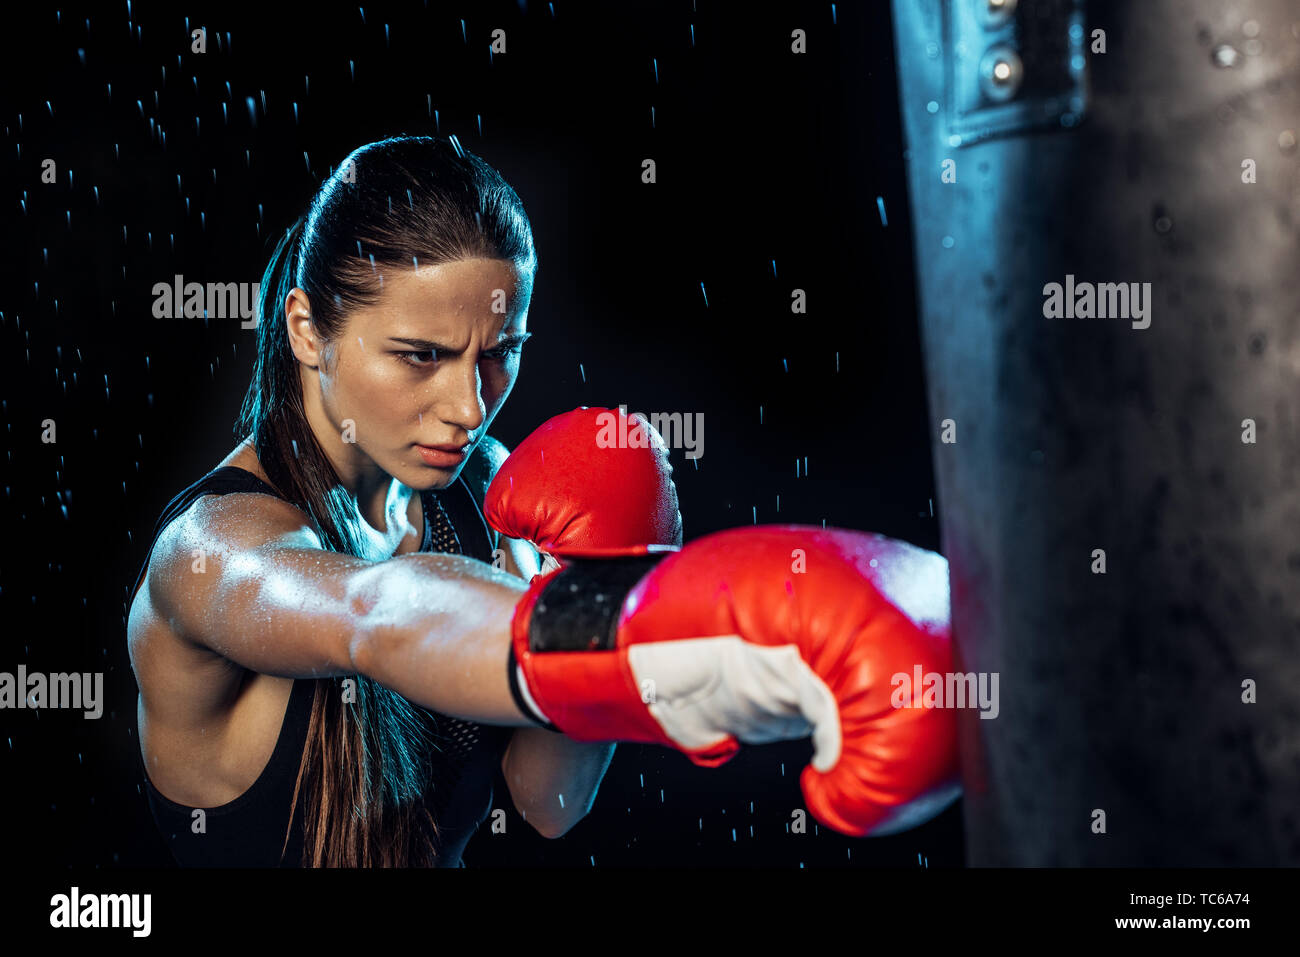 Pensive boxer in red boxing gloves training under water drops on black - Stock Image